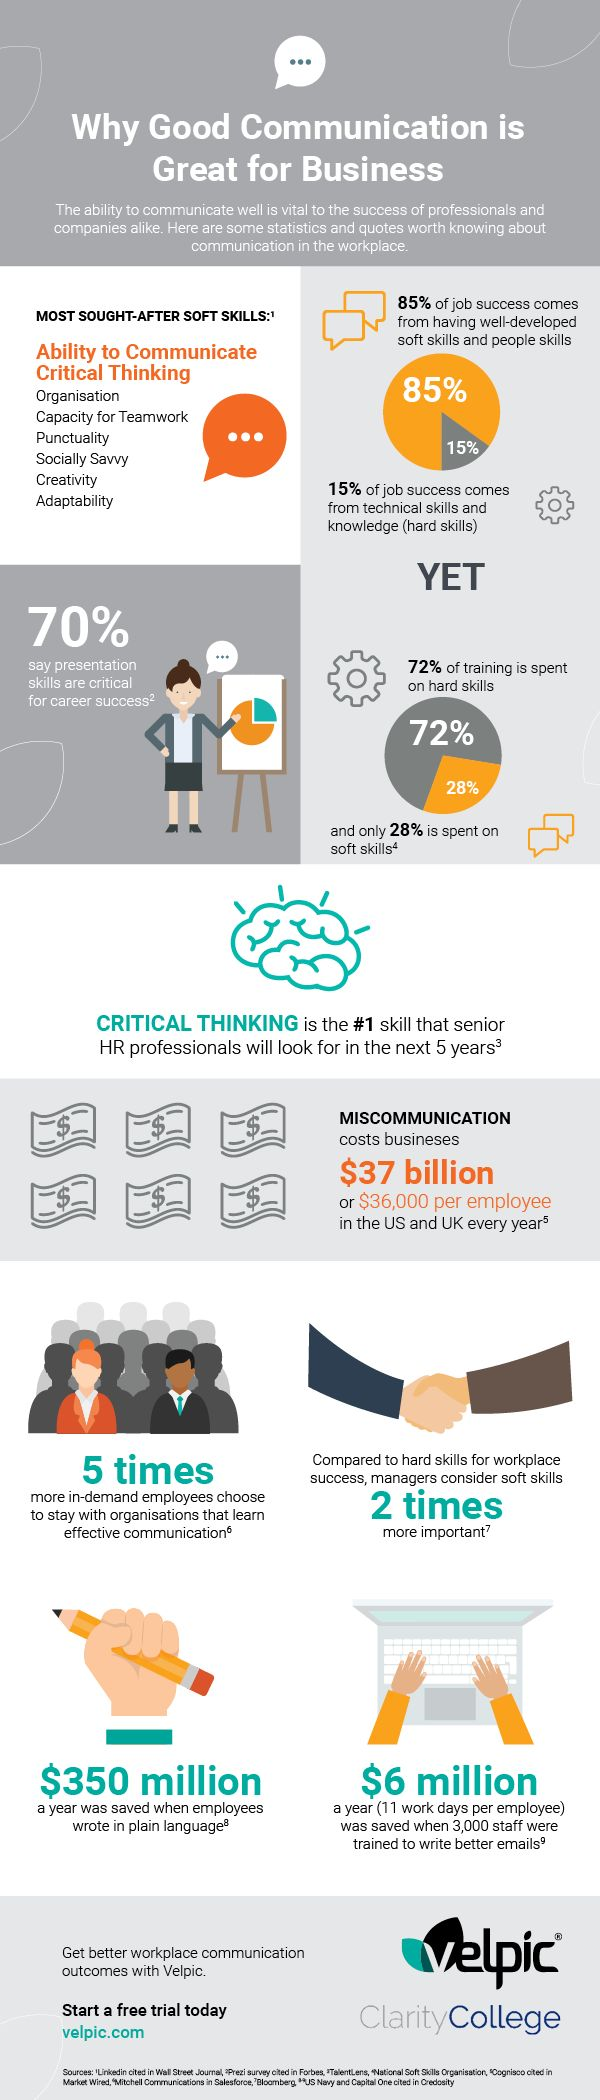 17 best ideas about good communication skills good the why good communication is great for business infographic provides a snapshot of facts and outcomes related to improving communication skills